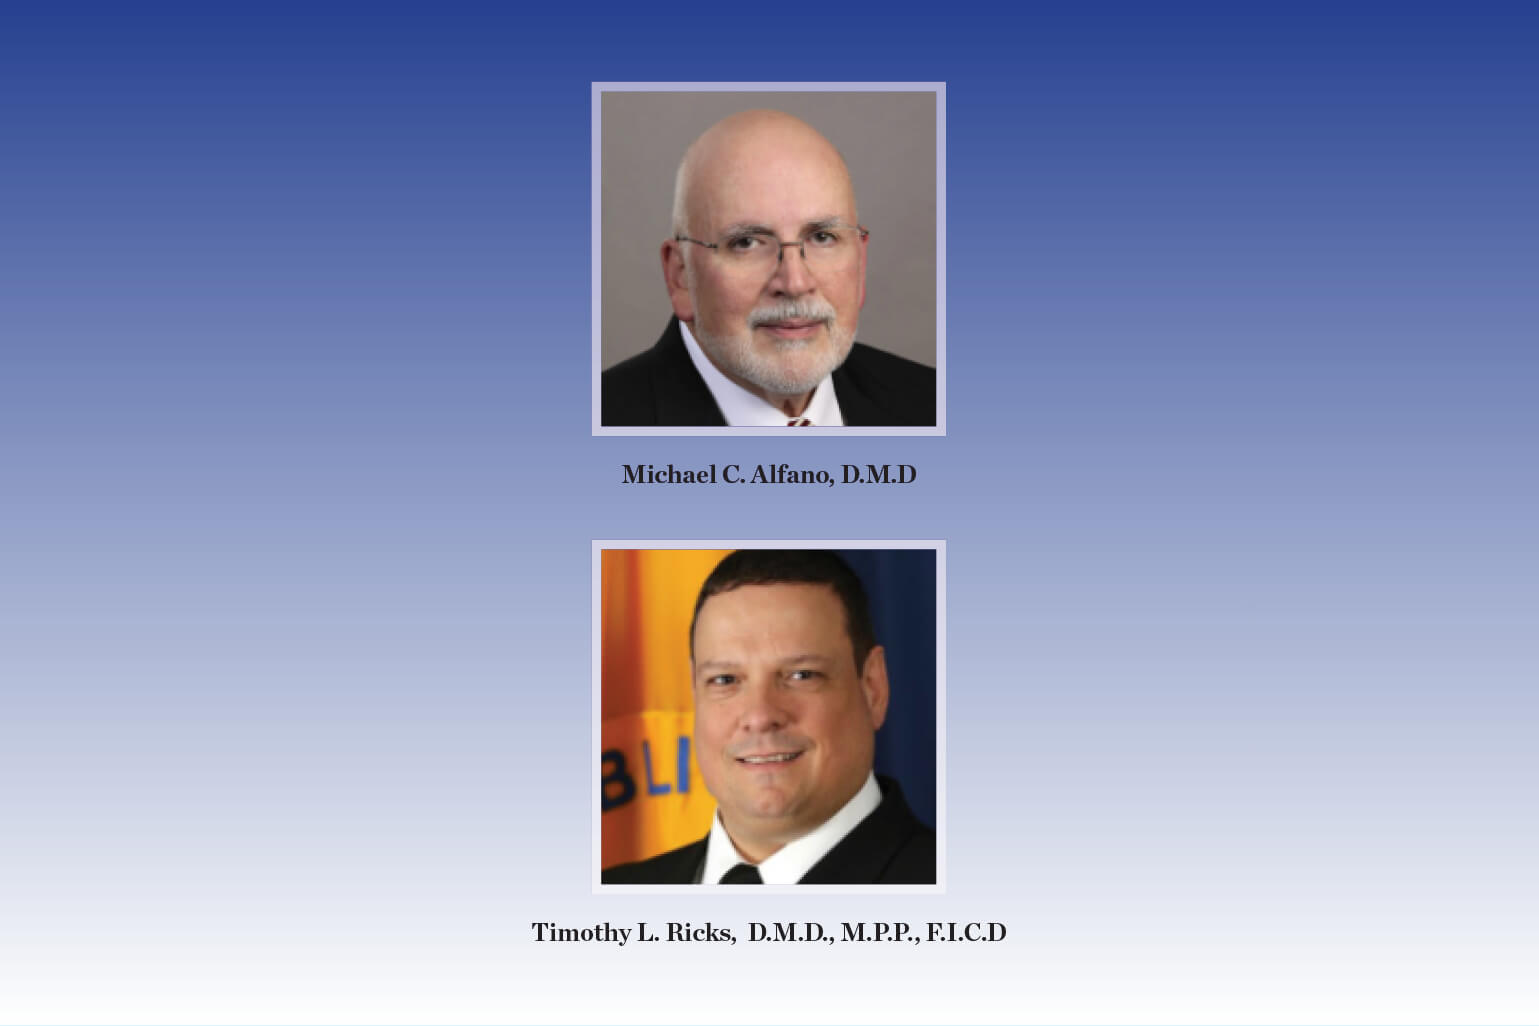 Santa Fe Group Congratulates Dr. Michael C. Alfano and Assistant Surgeon General Dr. Timothy L. Ricks on their Shils Fund Awards